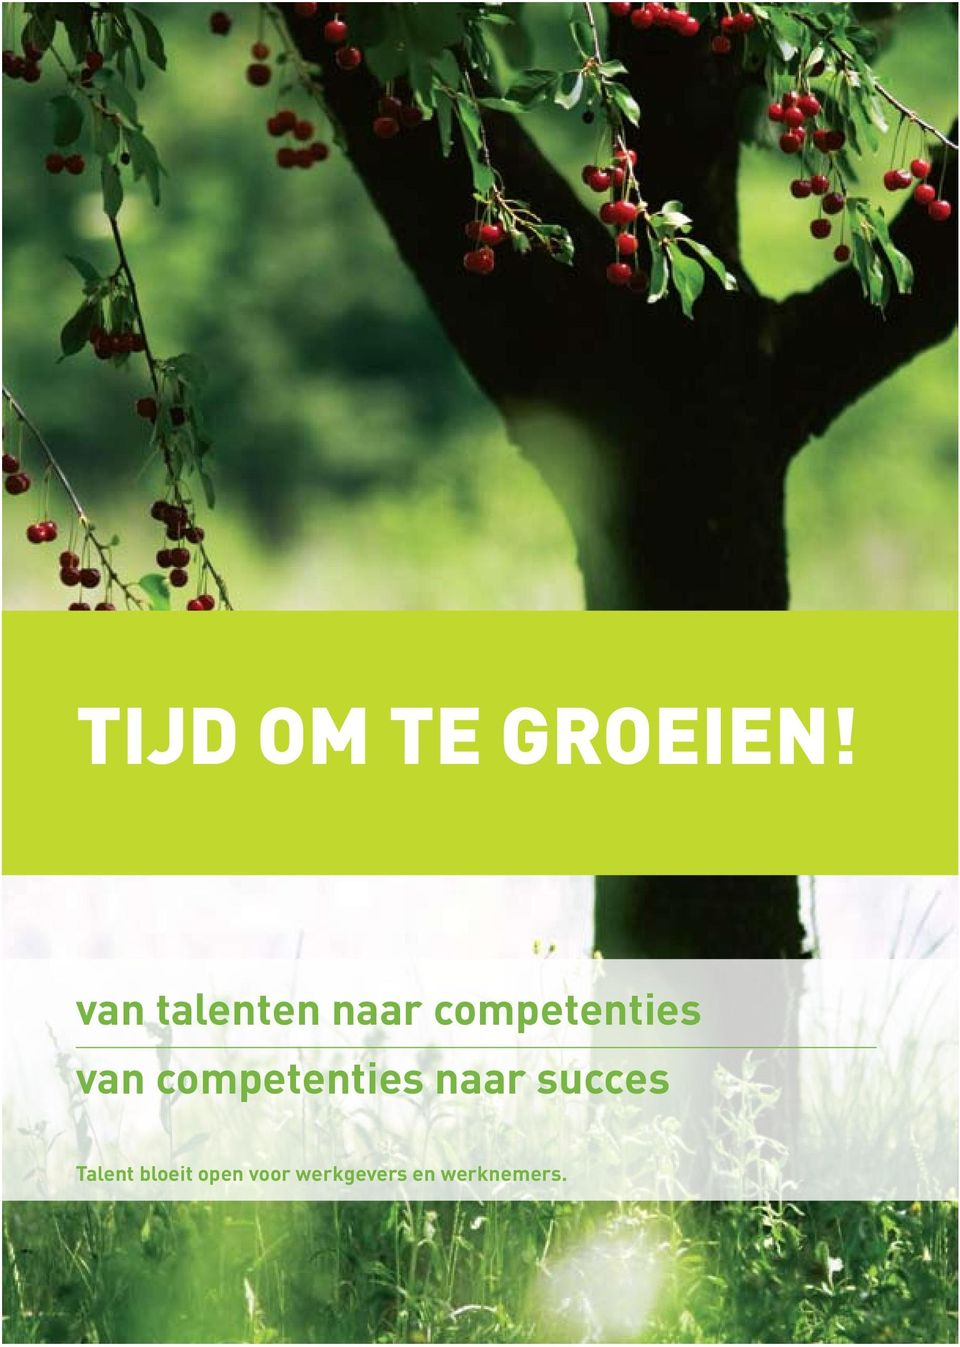 competenties naar succes Talent